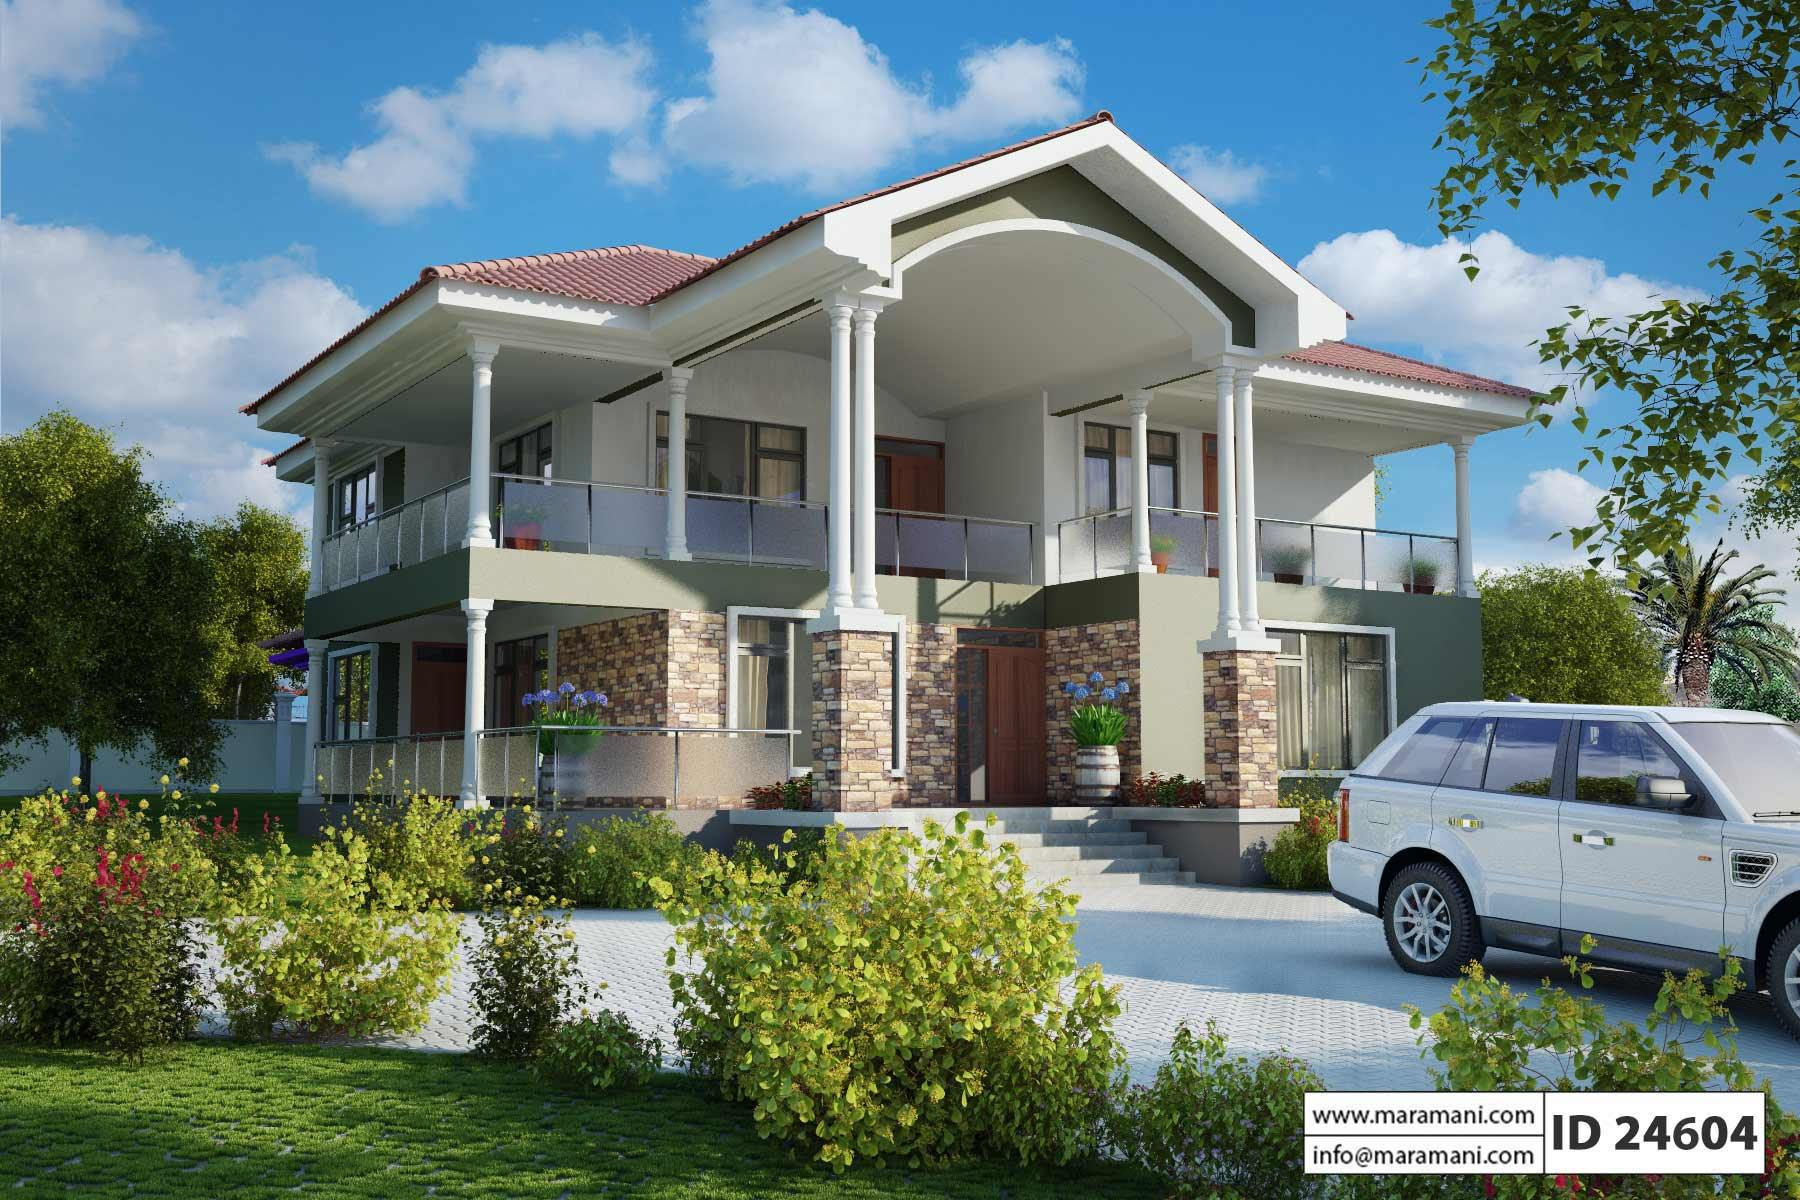 Four bedrooms house design id 24302 for Idaho house plans